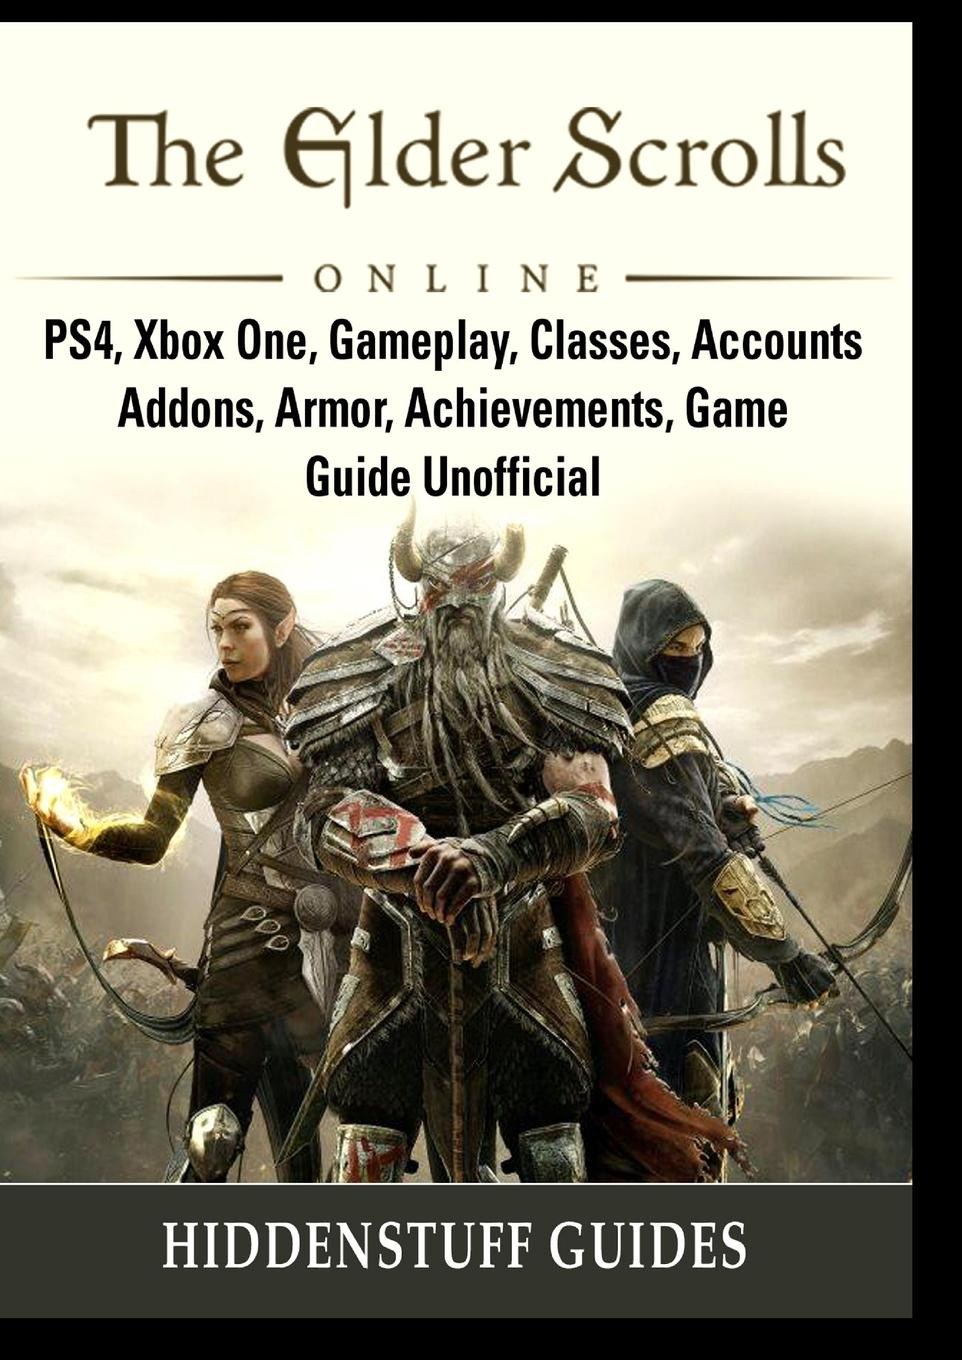 Hiddenstuff Guides. The Elder Scrolls Online, PS4, Xbox One, Gameplay, Classes, Accounts, Addons, Armor, Achievements, Game Guide Unofficial